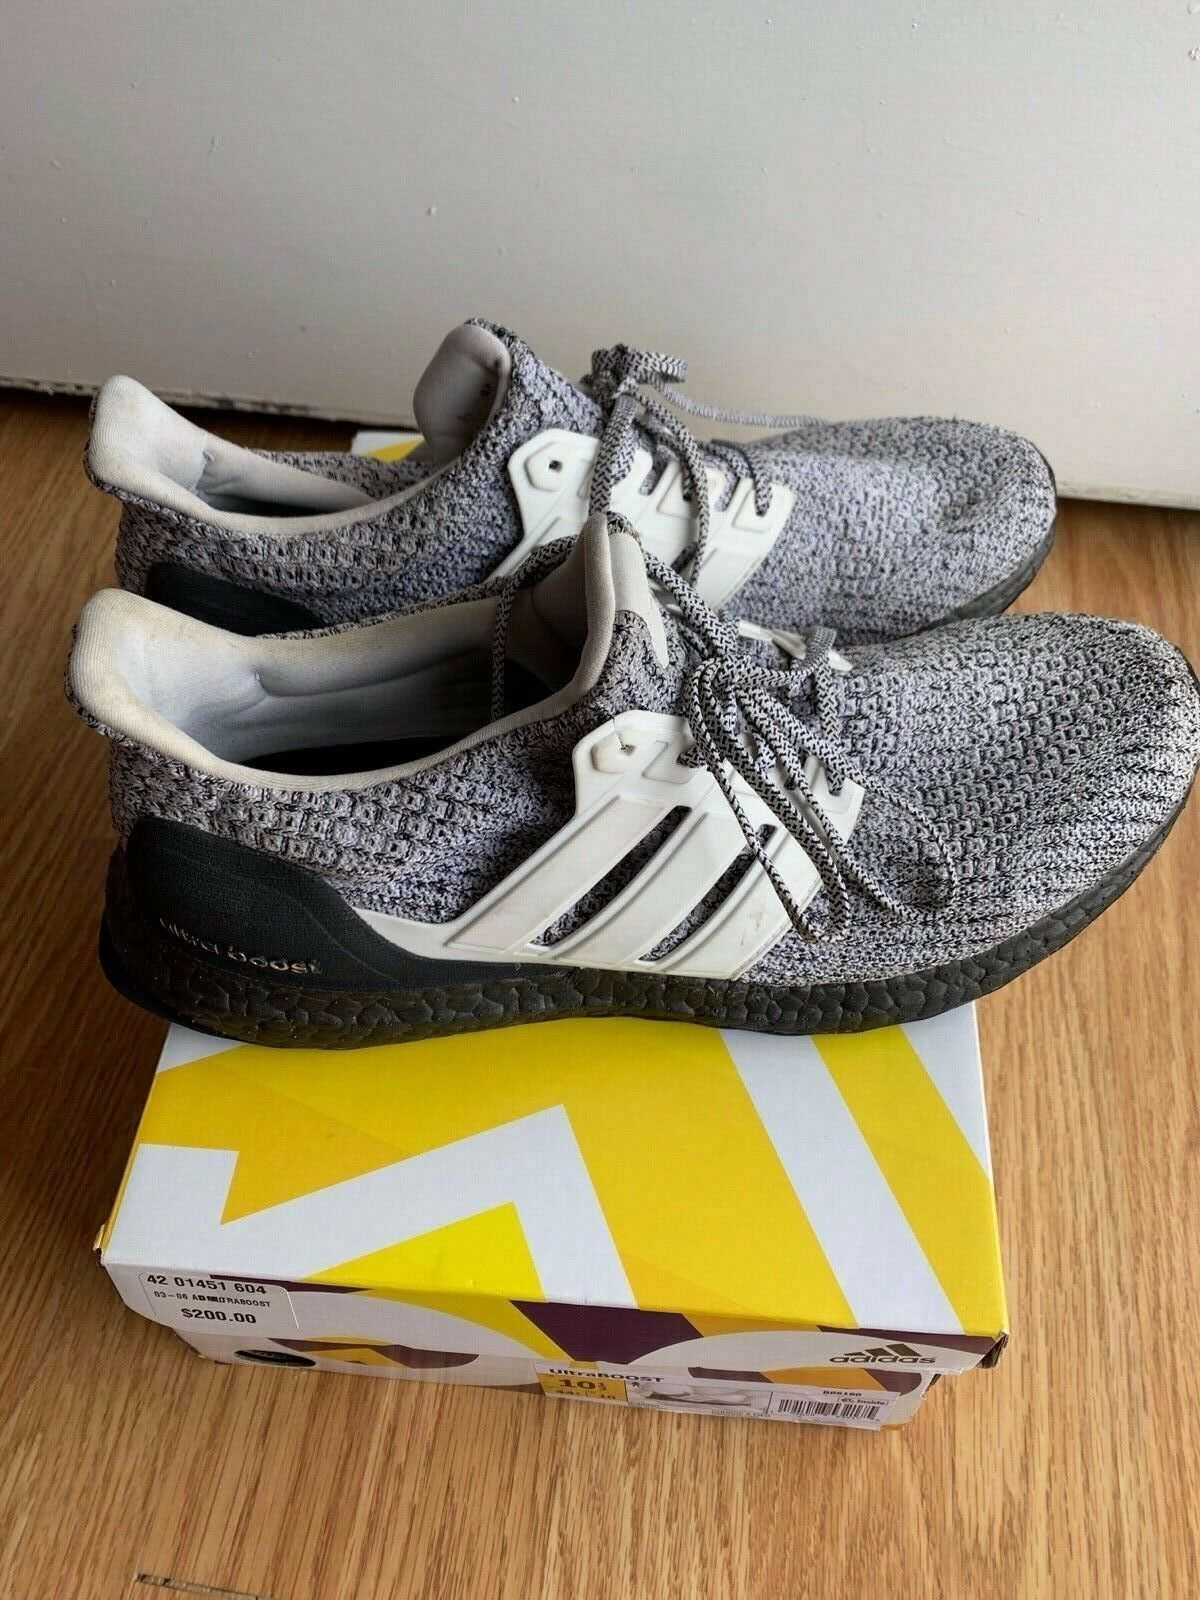 91851960b Adidas Ultra BOOST 4.0 Oreo BB6180 Cookies and Cream LTD Men s Size 10.5 US